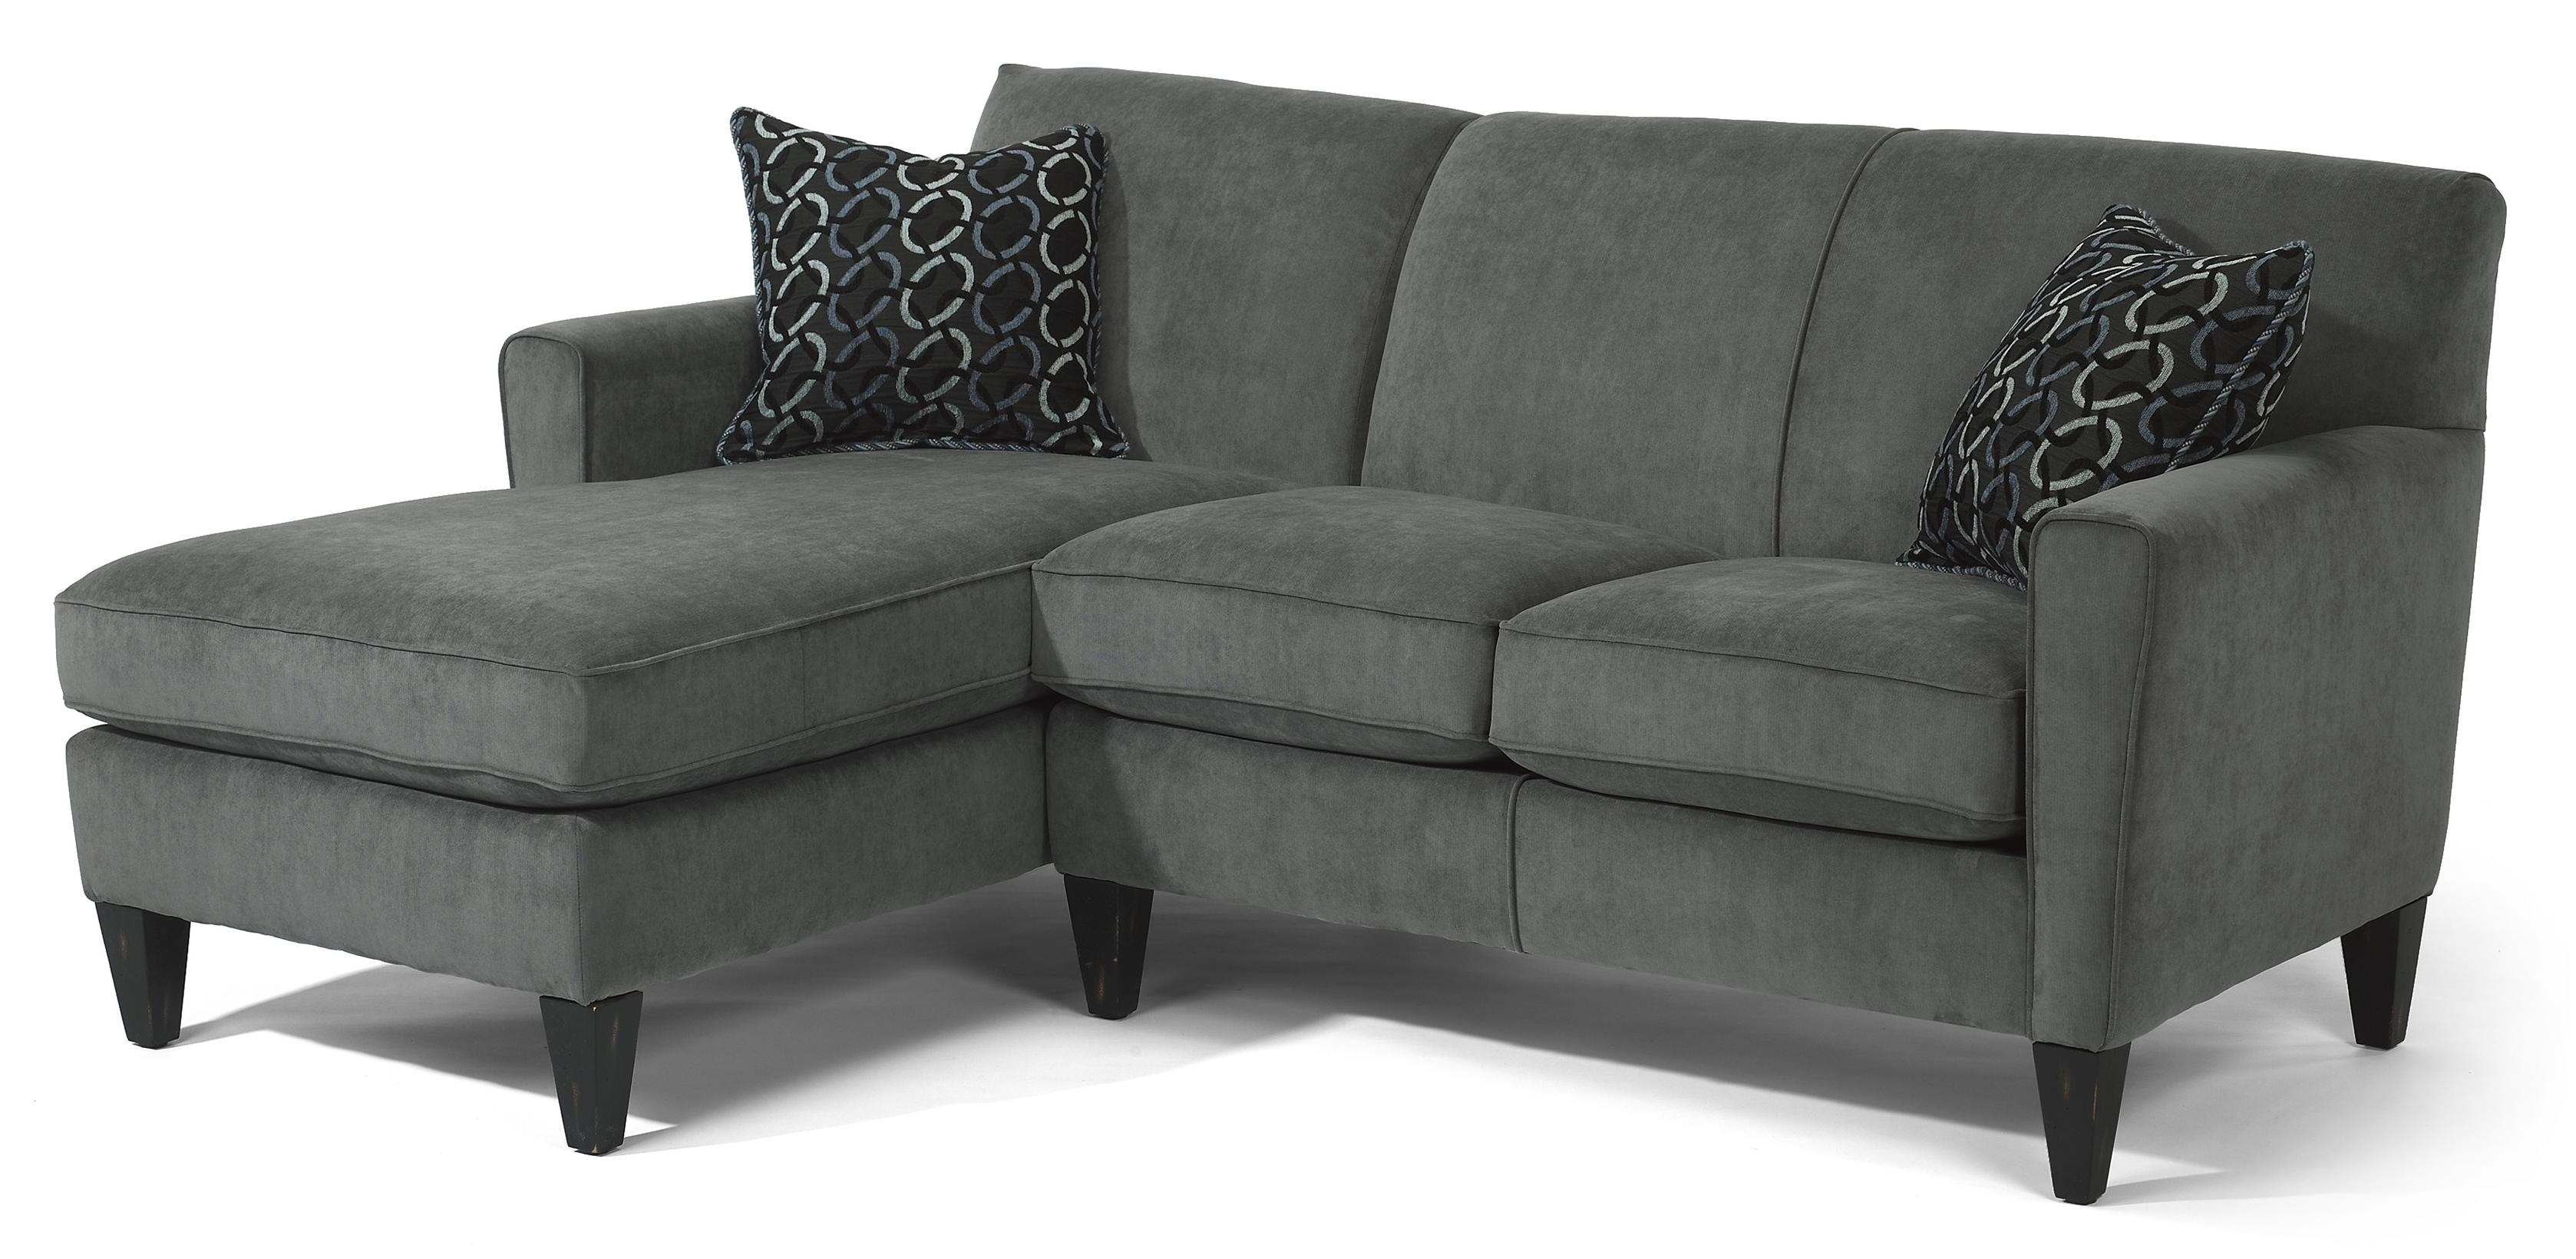 Flexsteel Digby Contemporary L Shape Sectional Sofa – Ahfa – Sofa Intended For Delano 2 Piece Sectionals With Laf Oversized Chaise (Image 16 of 25)